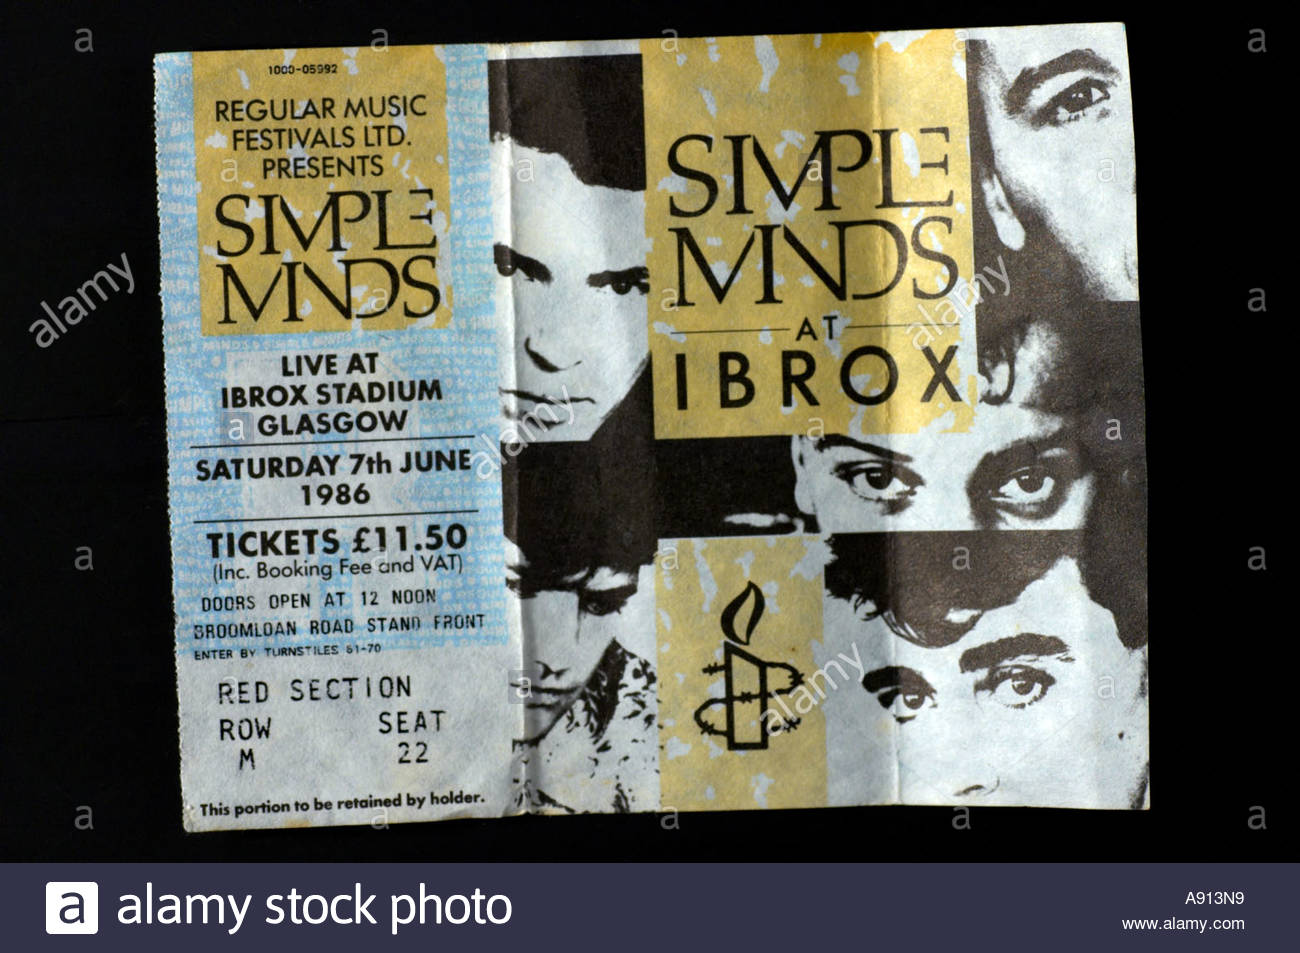 A concert ticket for the pop group Simple Minds at Ibrox Stadium Glasgow 1986 - Stock Image